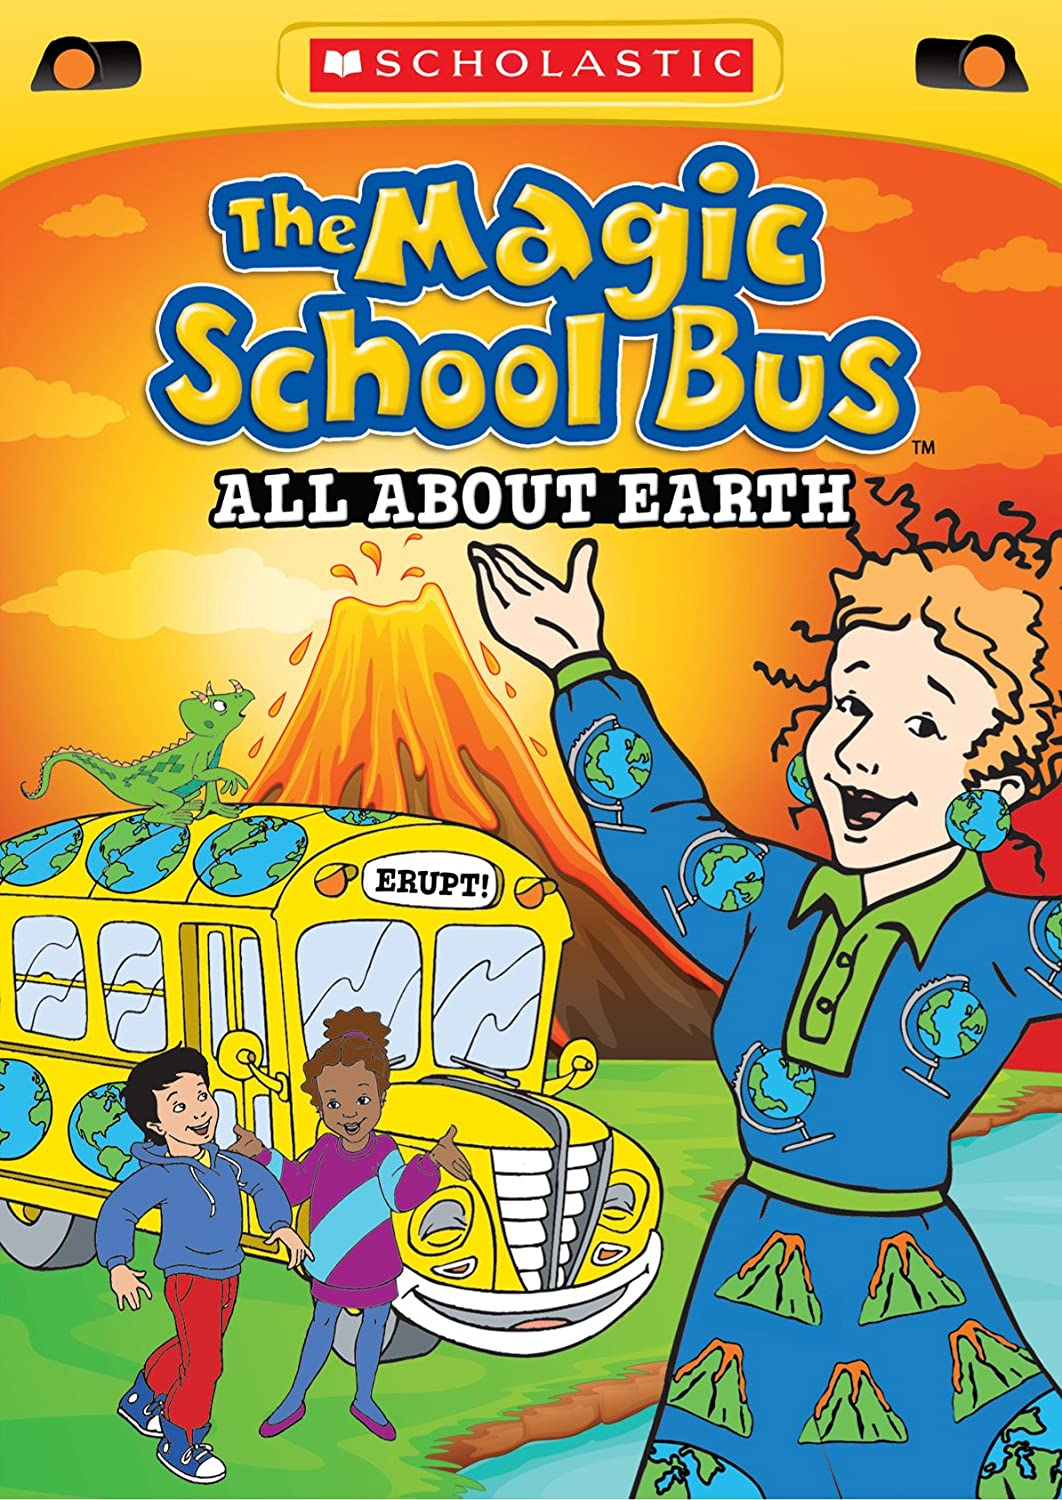 The Magic School Bus Class The Magic School Bus All